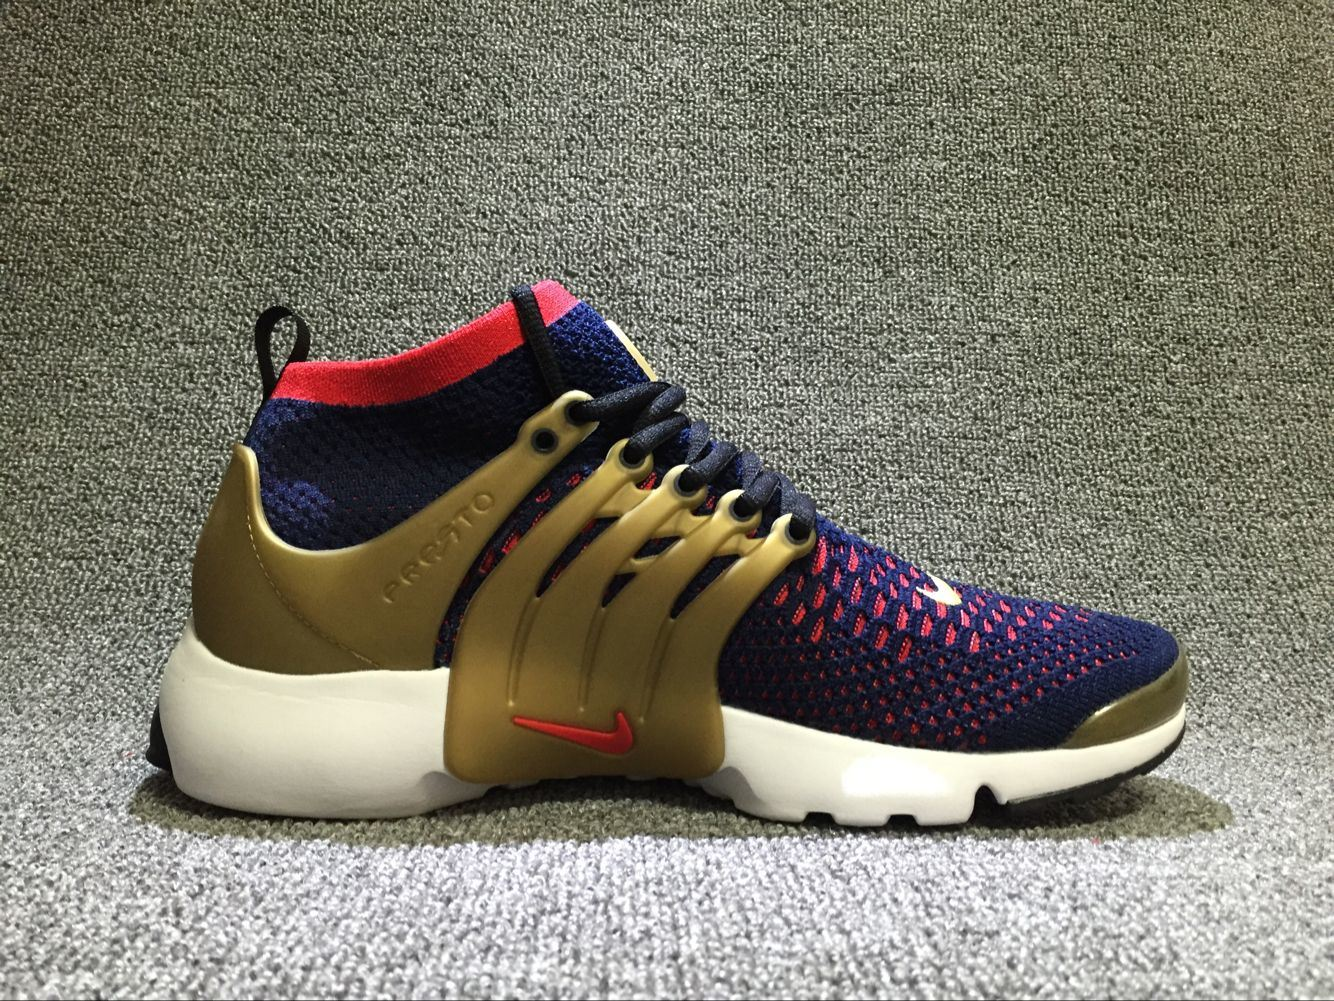 188a91e09203bd 2018 Top Presto 5 Br QS Breathe Black White Yellow Red Mens Shoes Sneakers  Women Running Shoes Walking Designer Shoes Hot Men Sports Shoe